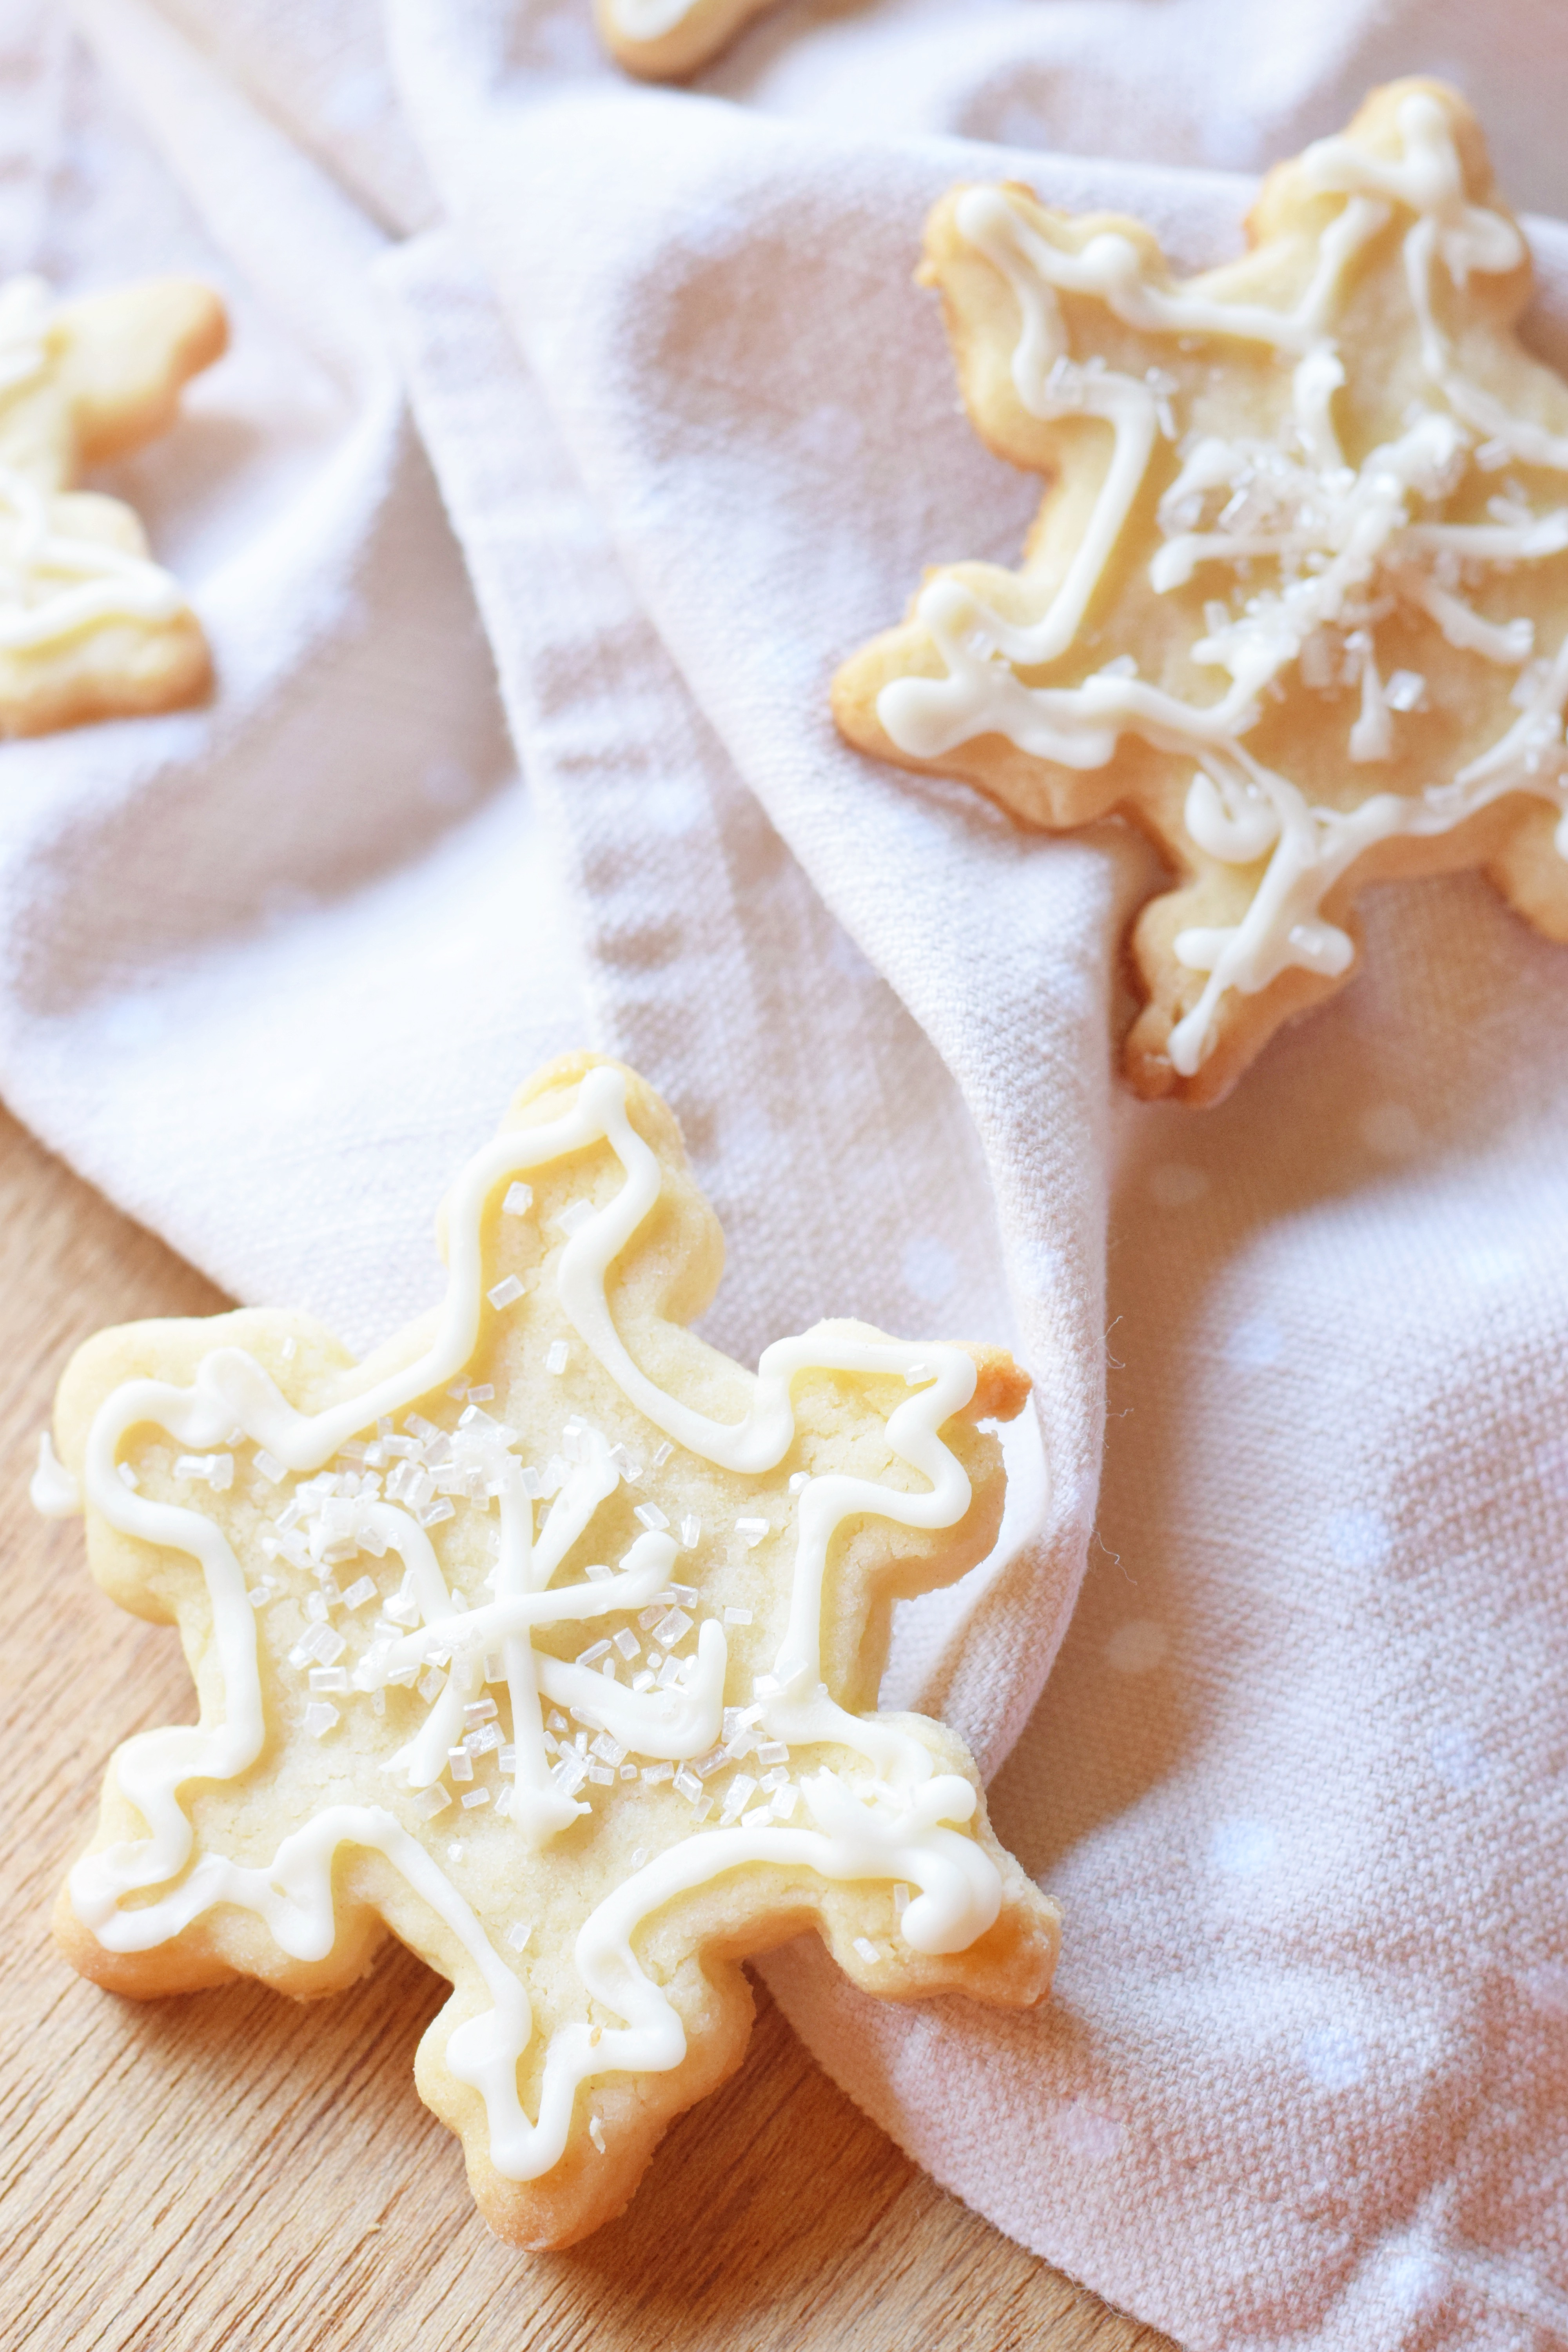 How To Make Perfect Royal Icing In 3 Minutes - Royal Icing Recipe - Royal Icing Without Meringue Powder - Royal Icing With Egg Whites - Communikait by Kait Hanson